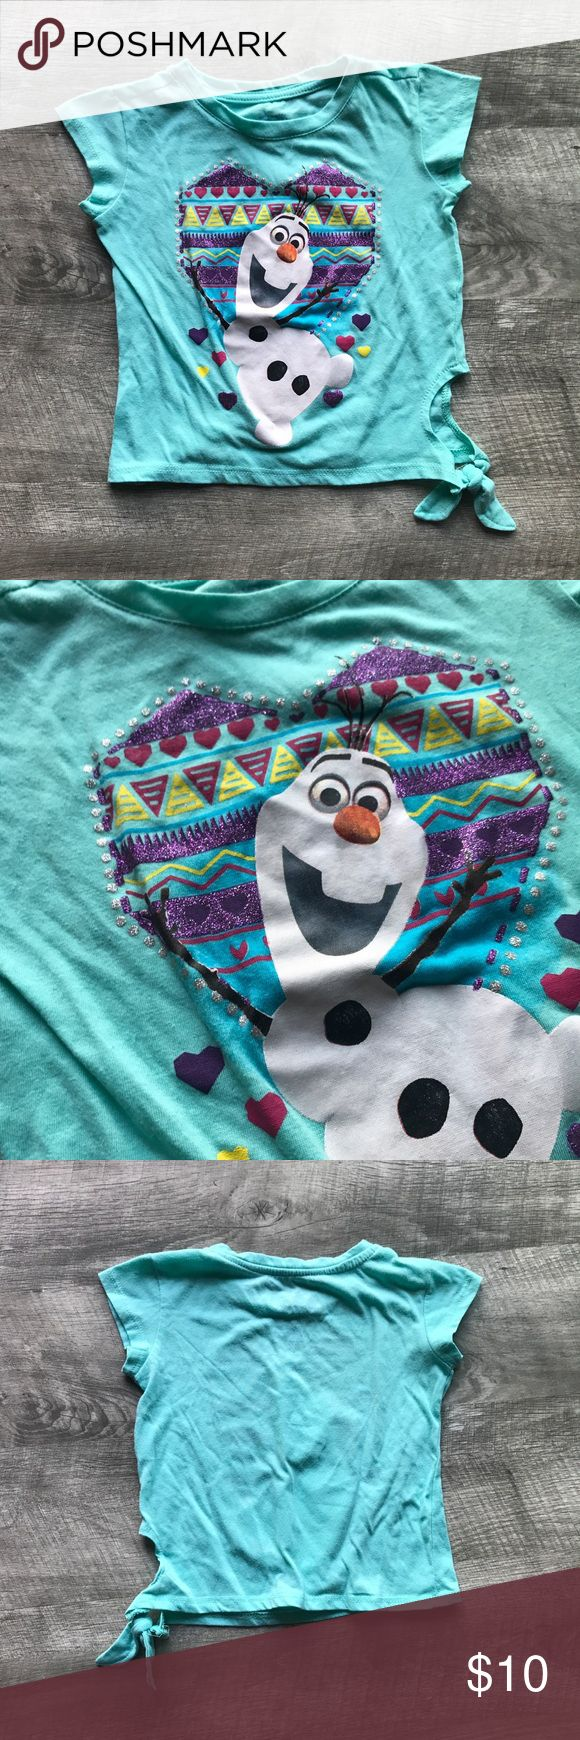 Olaf Shirt with Side Tie and Glitter Details! This shirt is so cute! I got it for our Disney World trip and then my step-daughter didn't even wear it. She ended up wearing once at home for a couple of hours. Will come freshly steamed. Glitter Details with cute printed heart. Side tie at bottom. Pairs great with purple scallop hem shorts in my closet. Bundle for a personal discount. No trades. Disney Shirts & Tops Tees - Short Sleeve